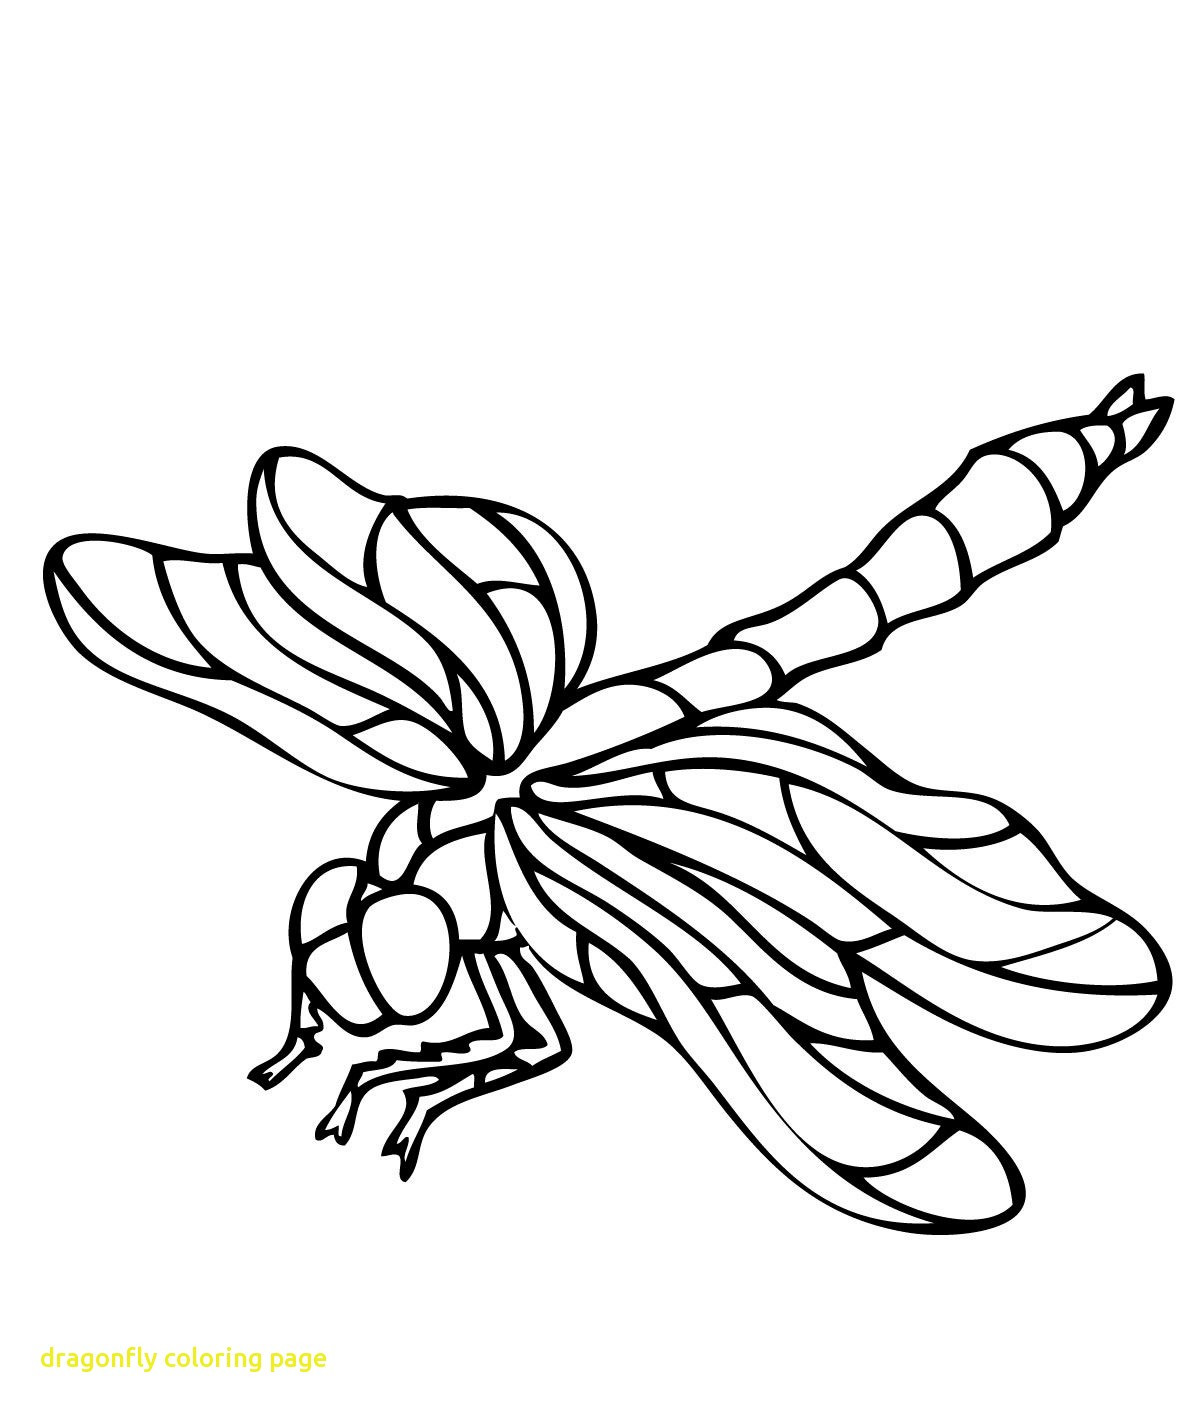 Dragonfly Coloring Pages For Adults At Getdrawings Com Free For